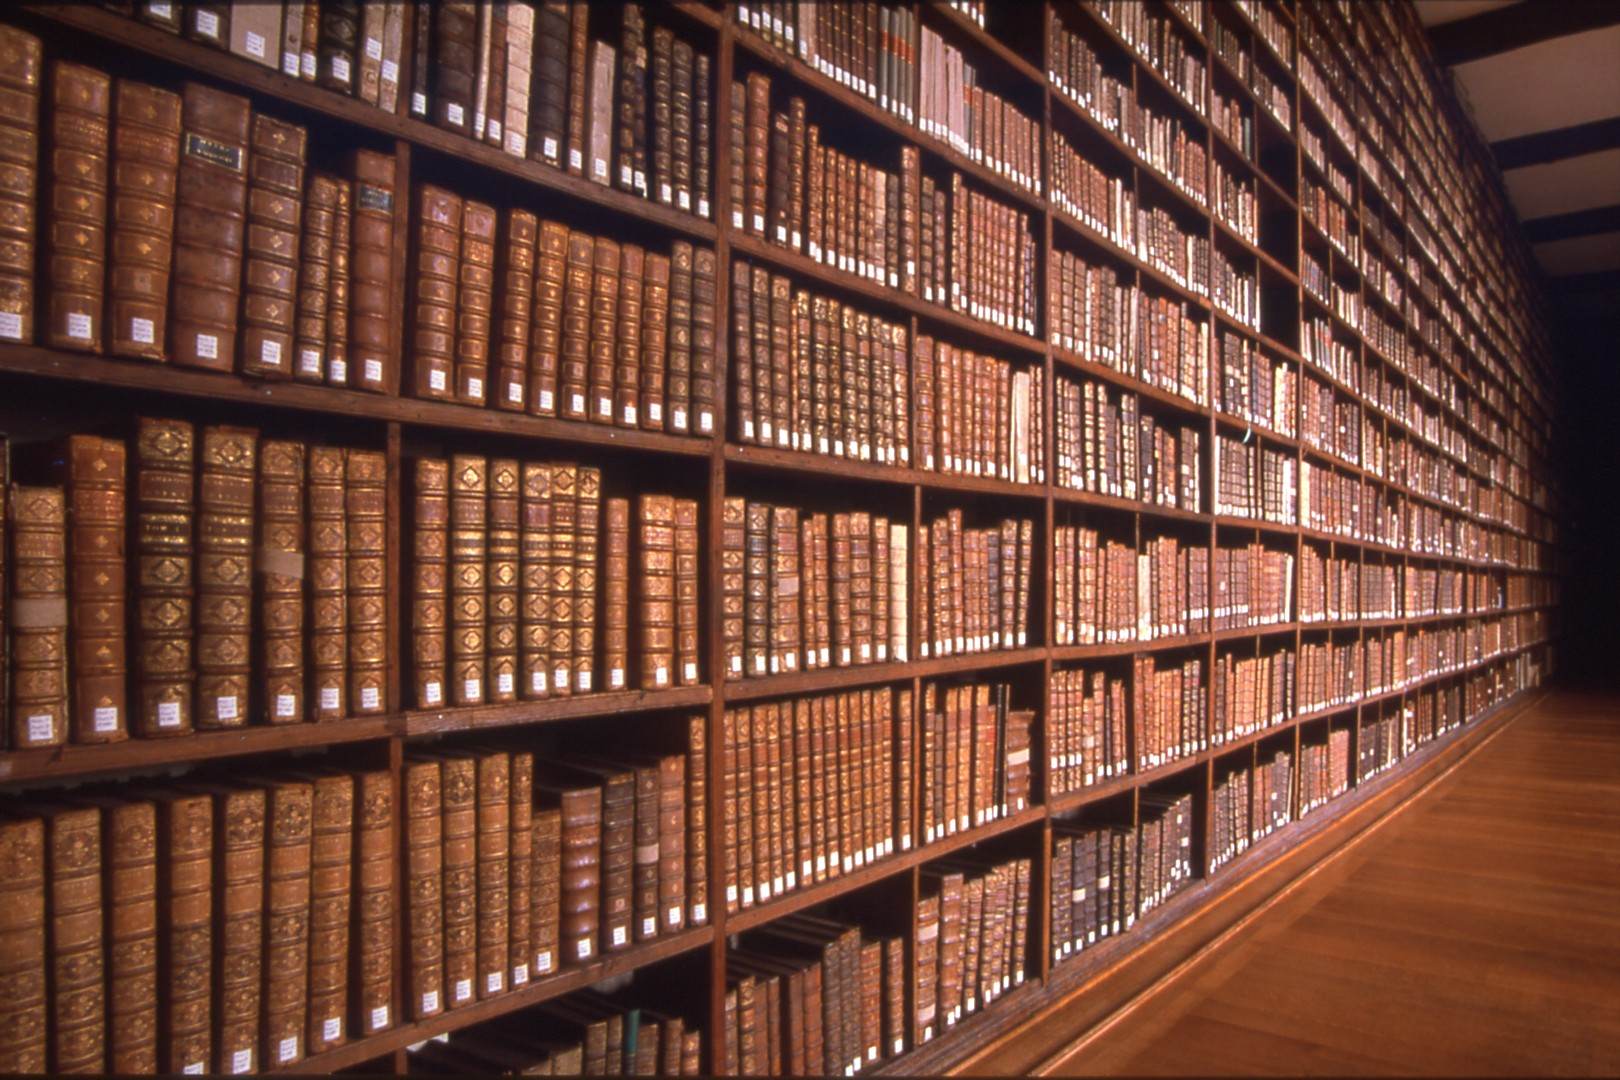 The Library; The Books